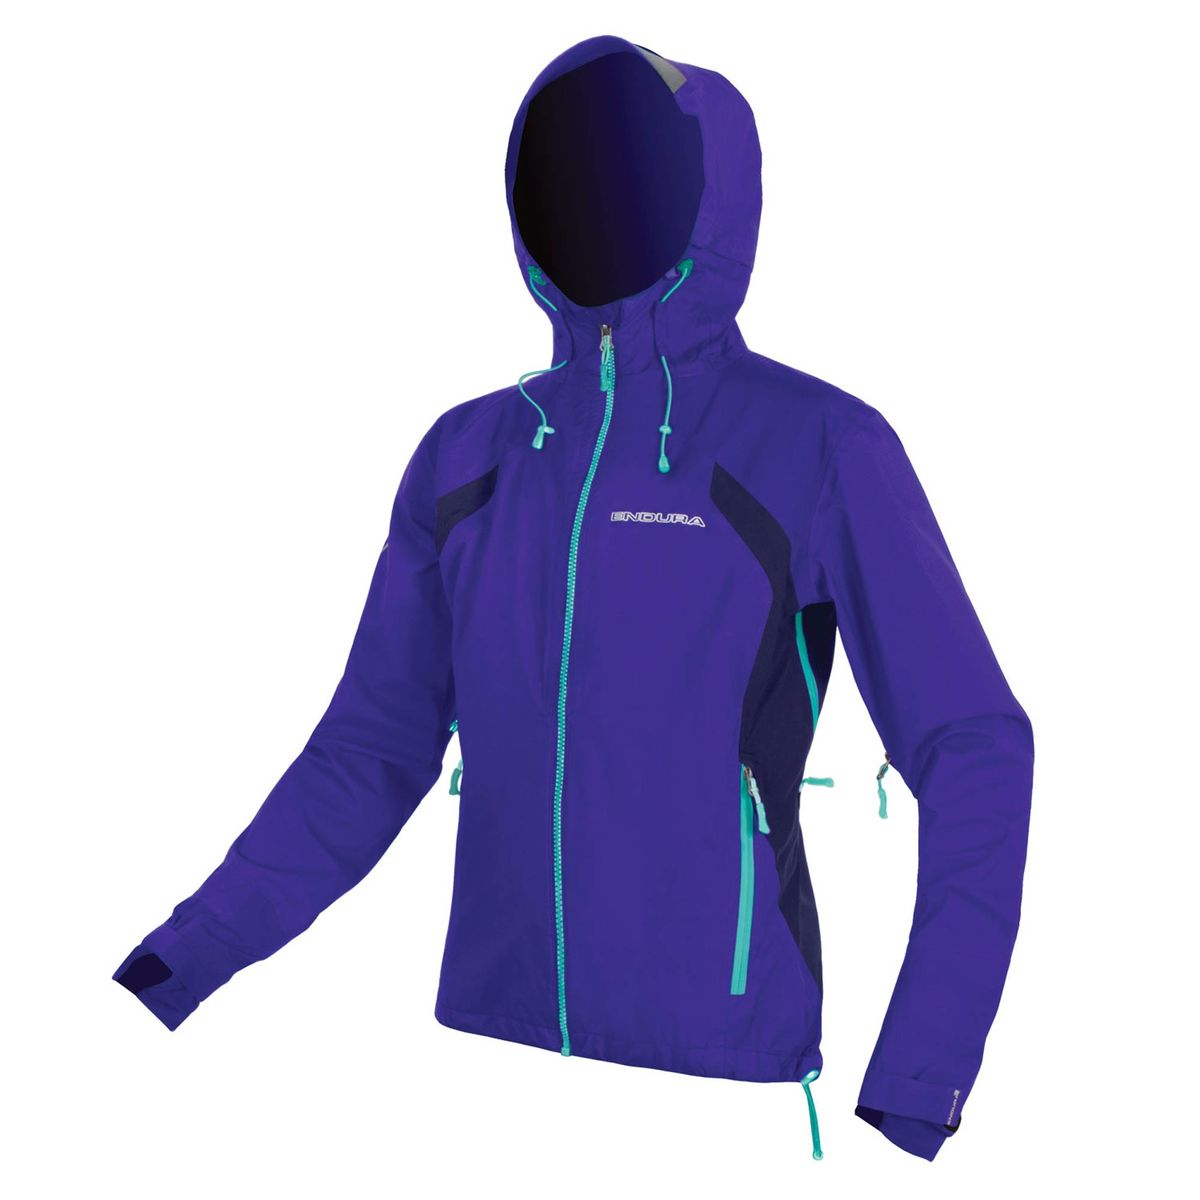 WMS MT500 II rain jacket for women